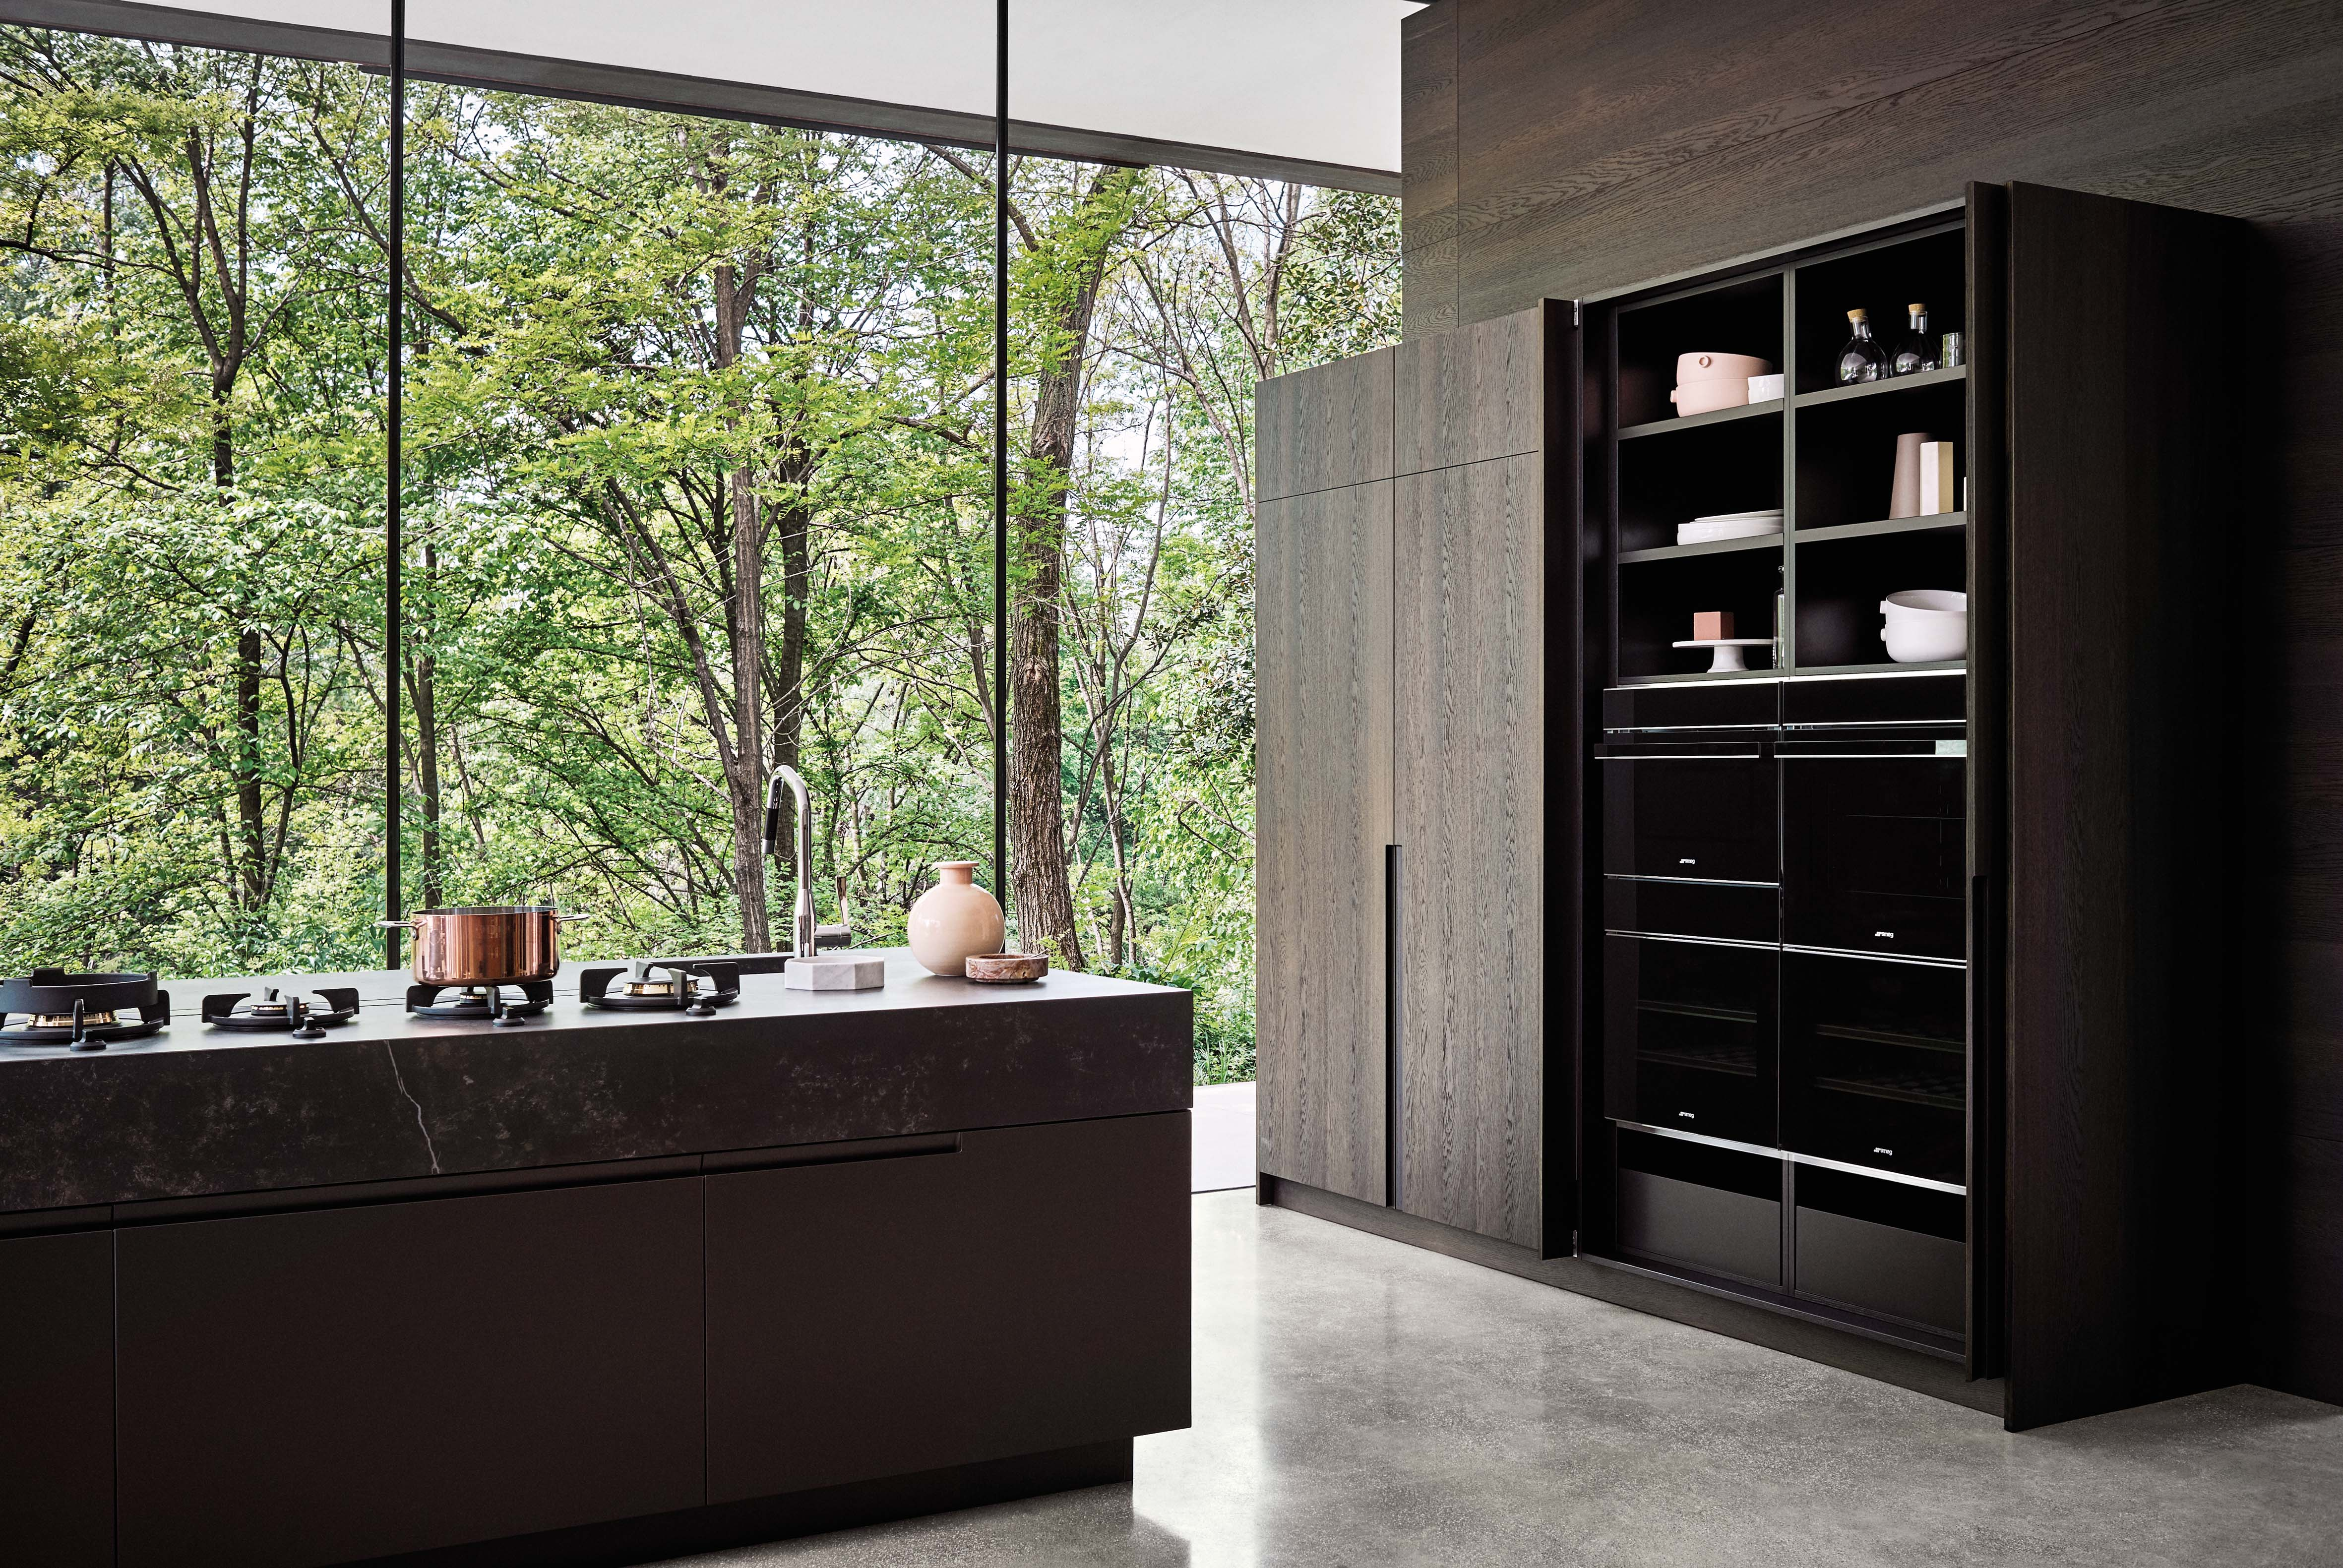 Etonnant Maxima 2.0 And The Other Cesaru0027s Kitchens At Eurocucina 2018